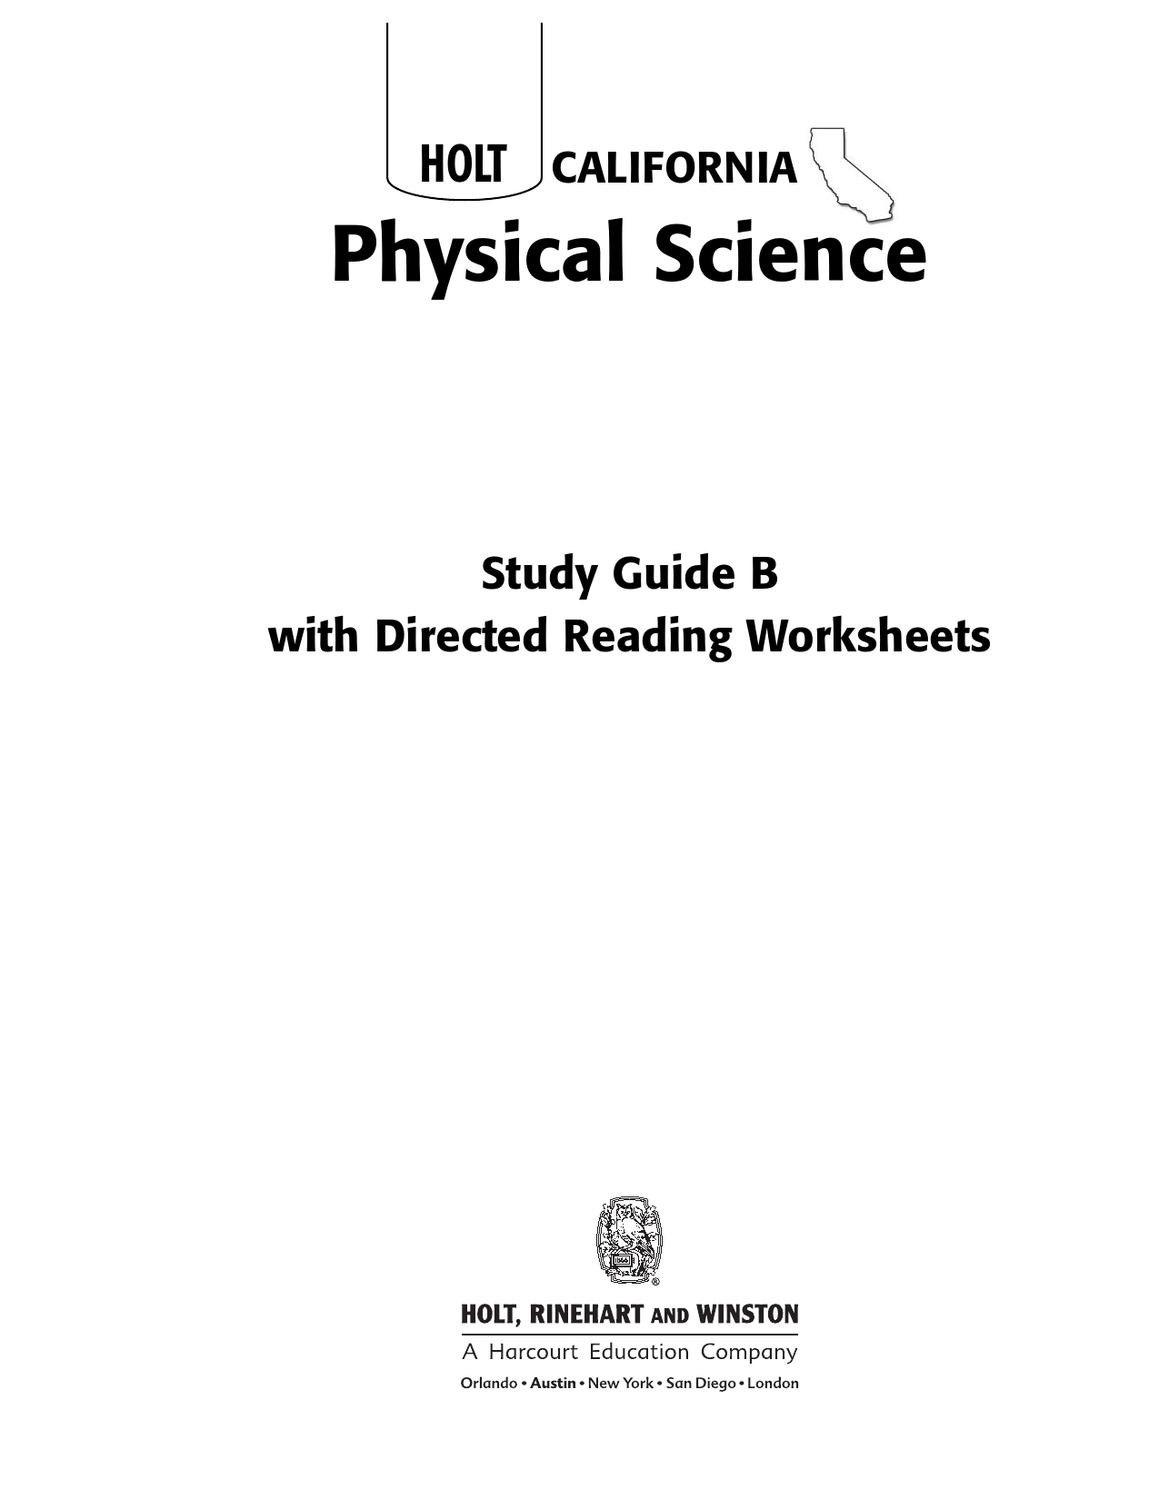 8th Grade Science Worksheets Pdf 8th Grade Science Worksheets by Lance issuu Rinehart and